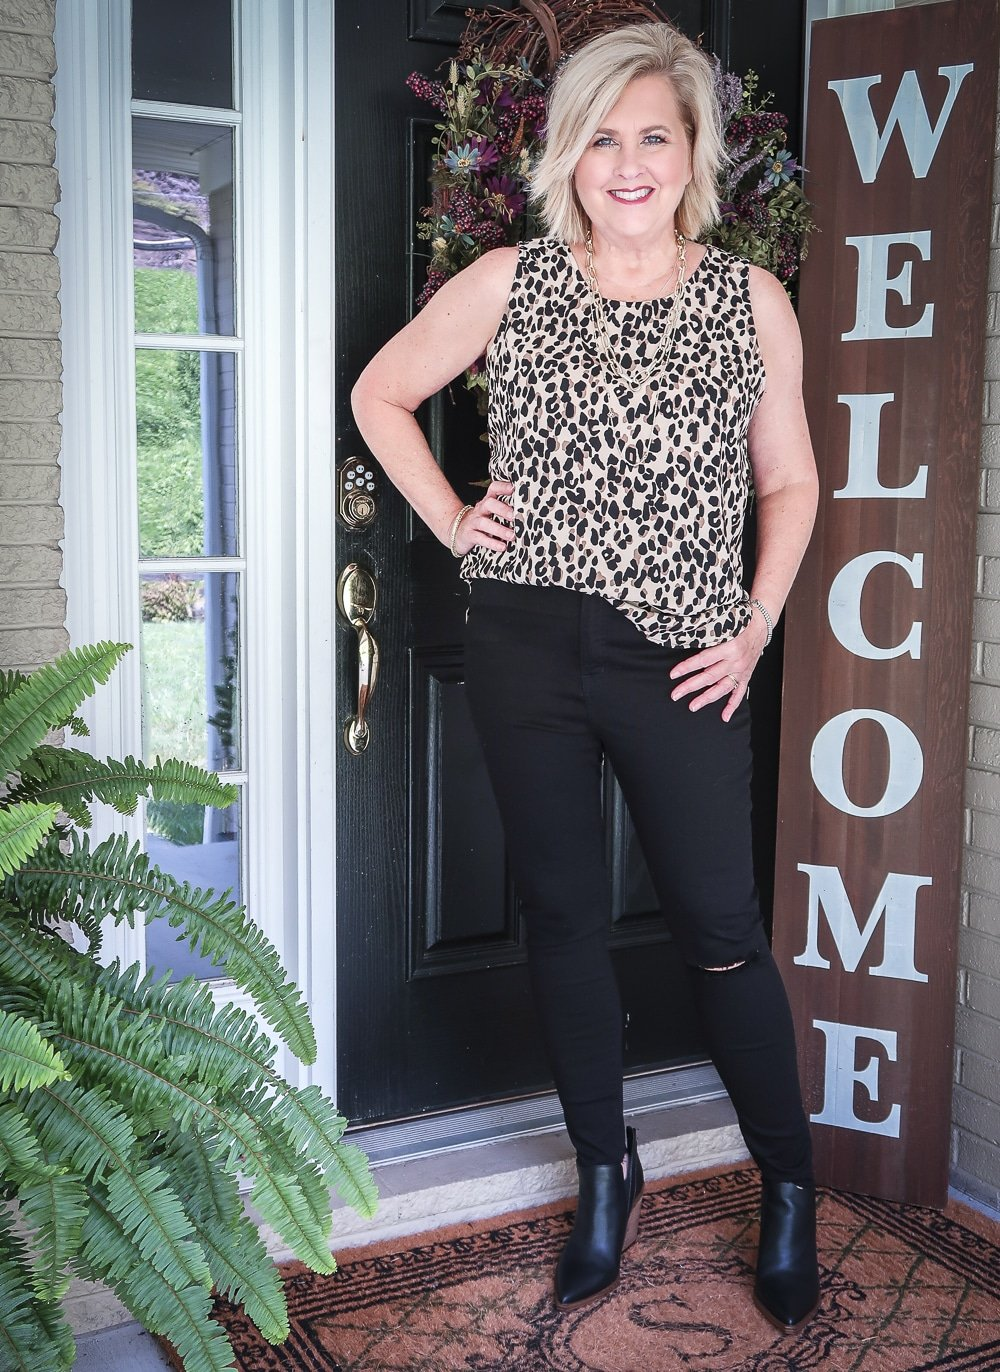 Fashion Blogger 50 Is Not Old is wearing a leopard print top that makes a statement and a pair of black distressed jeans by Madewell